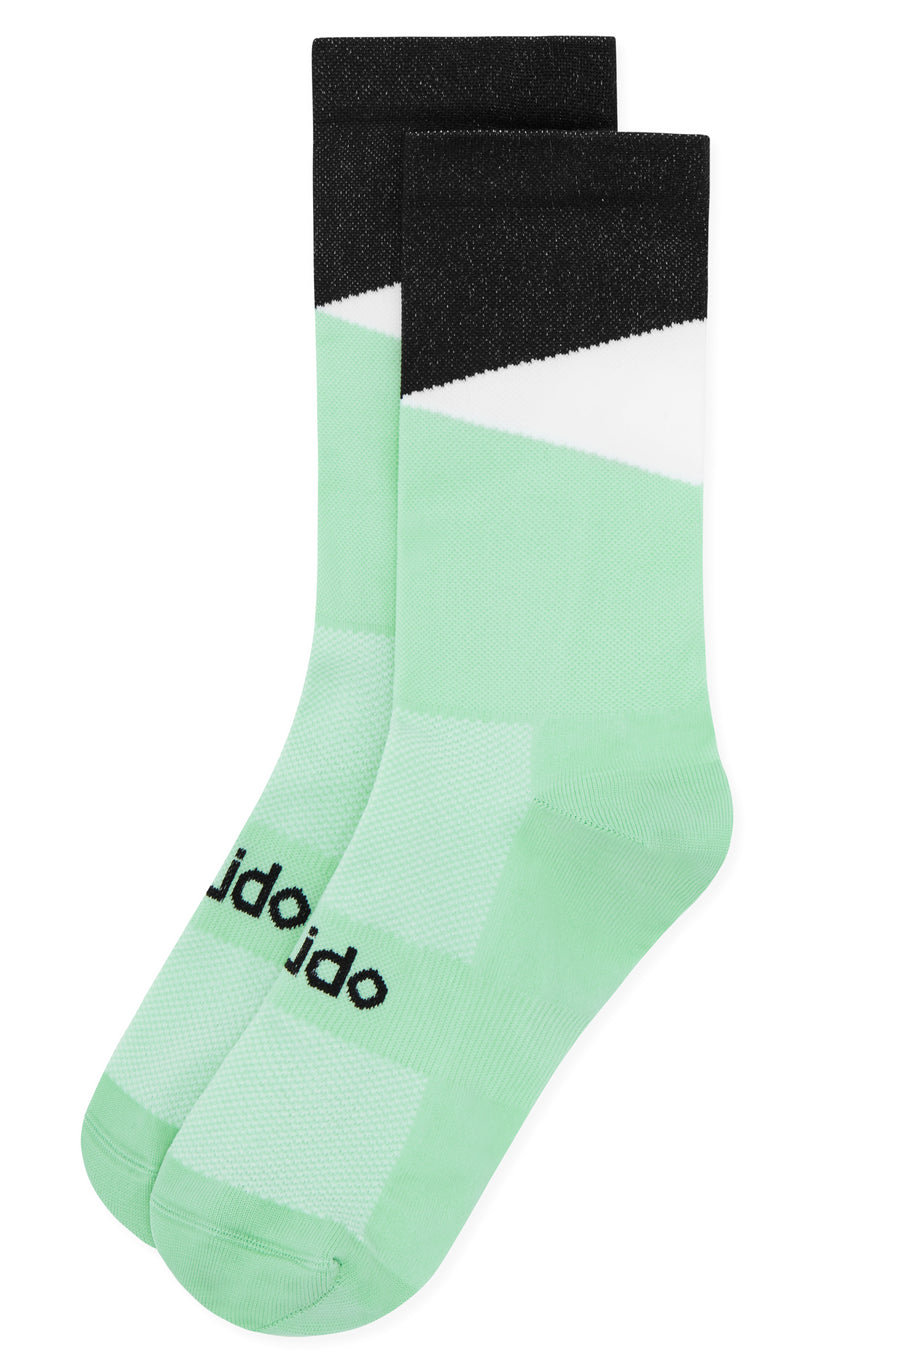 Black and lime cyclings socks designed to look like cats eyes